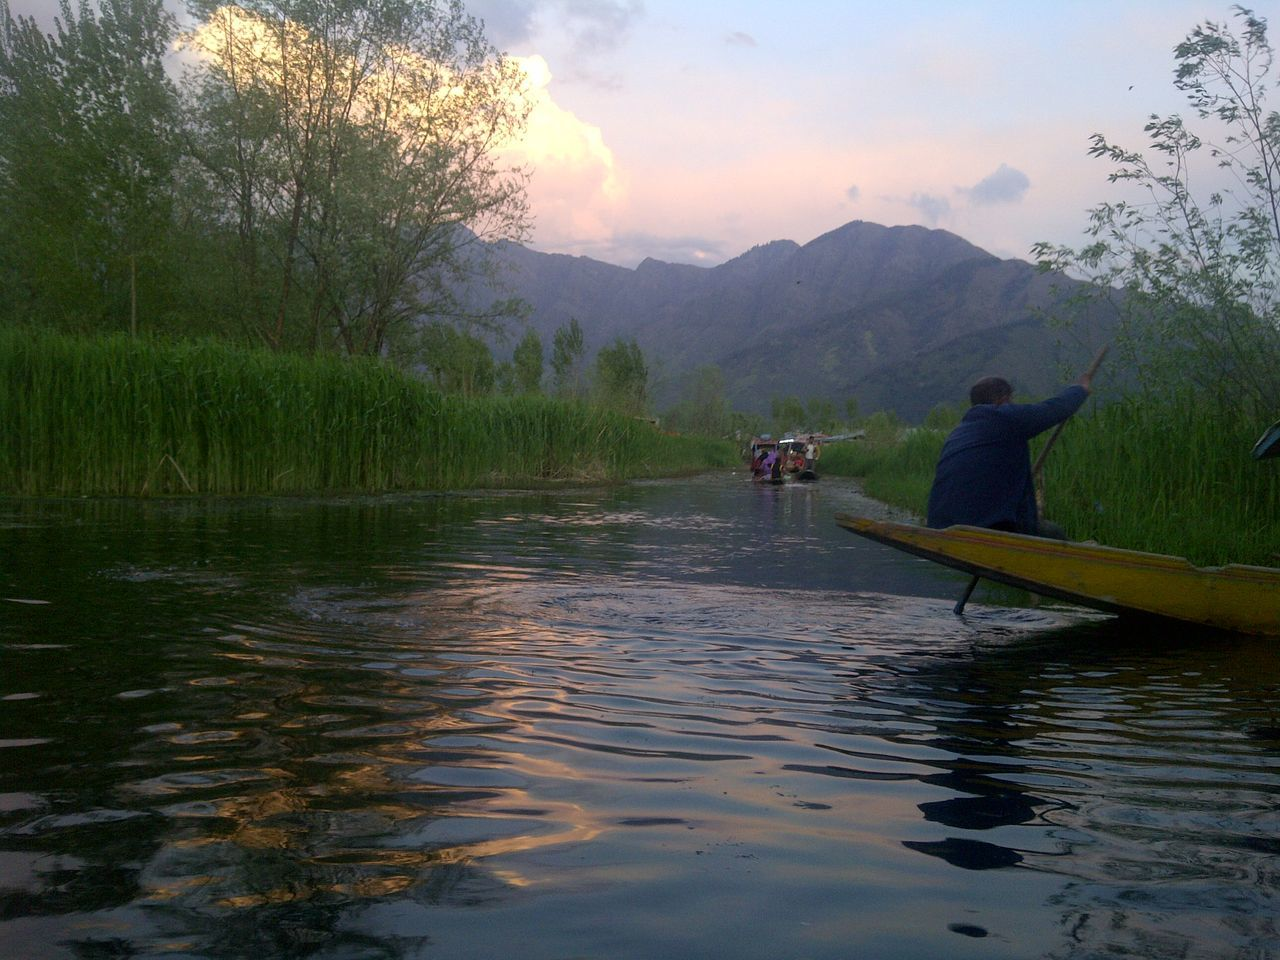 Beauty In Nature Day Kashmir Kashmirdiaries Nature Outdoors Sky Srinagar  Srinagar Kashmir Tranquility Water Feel The Journey My Favorite Place The Culture Of The Holidays